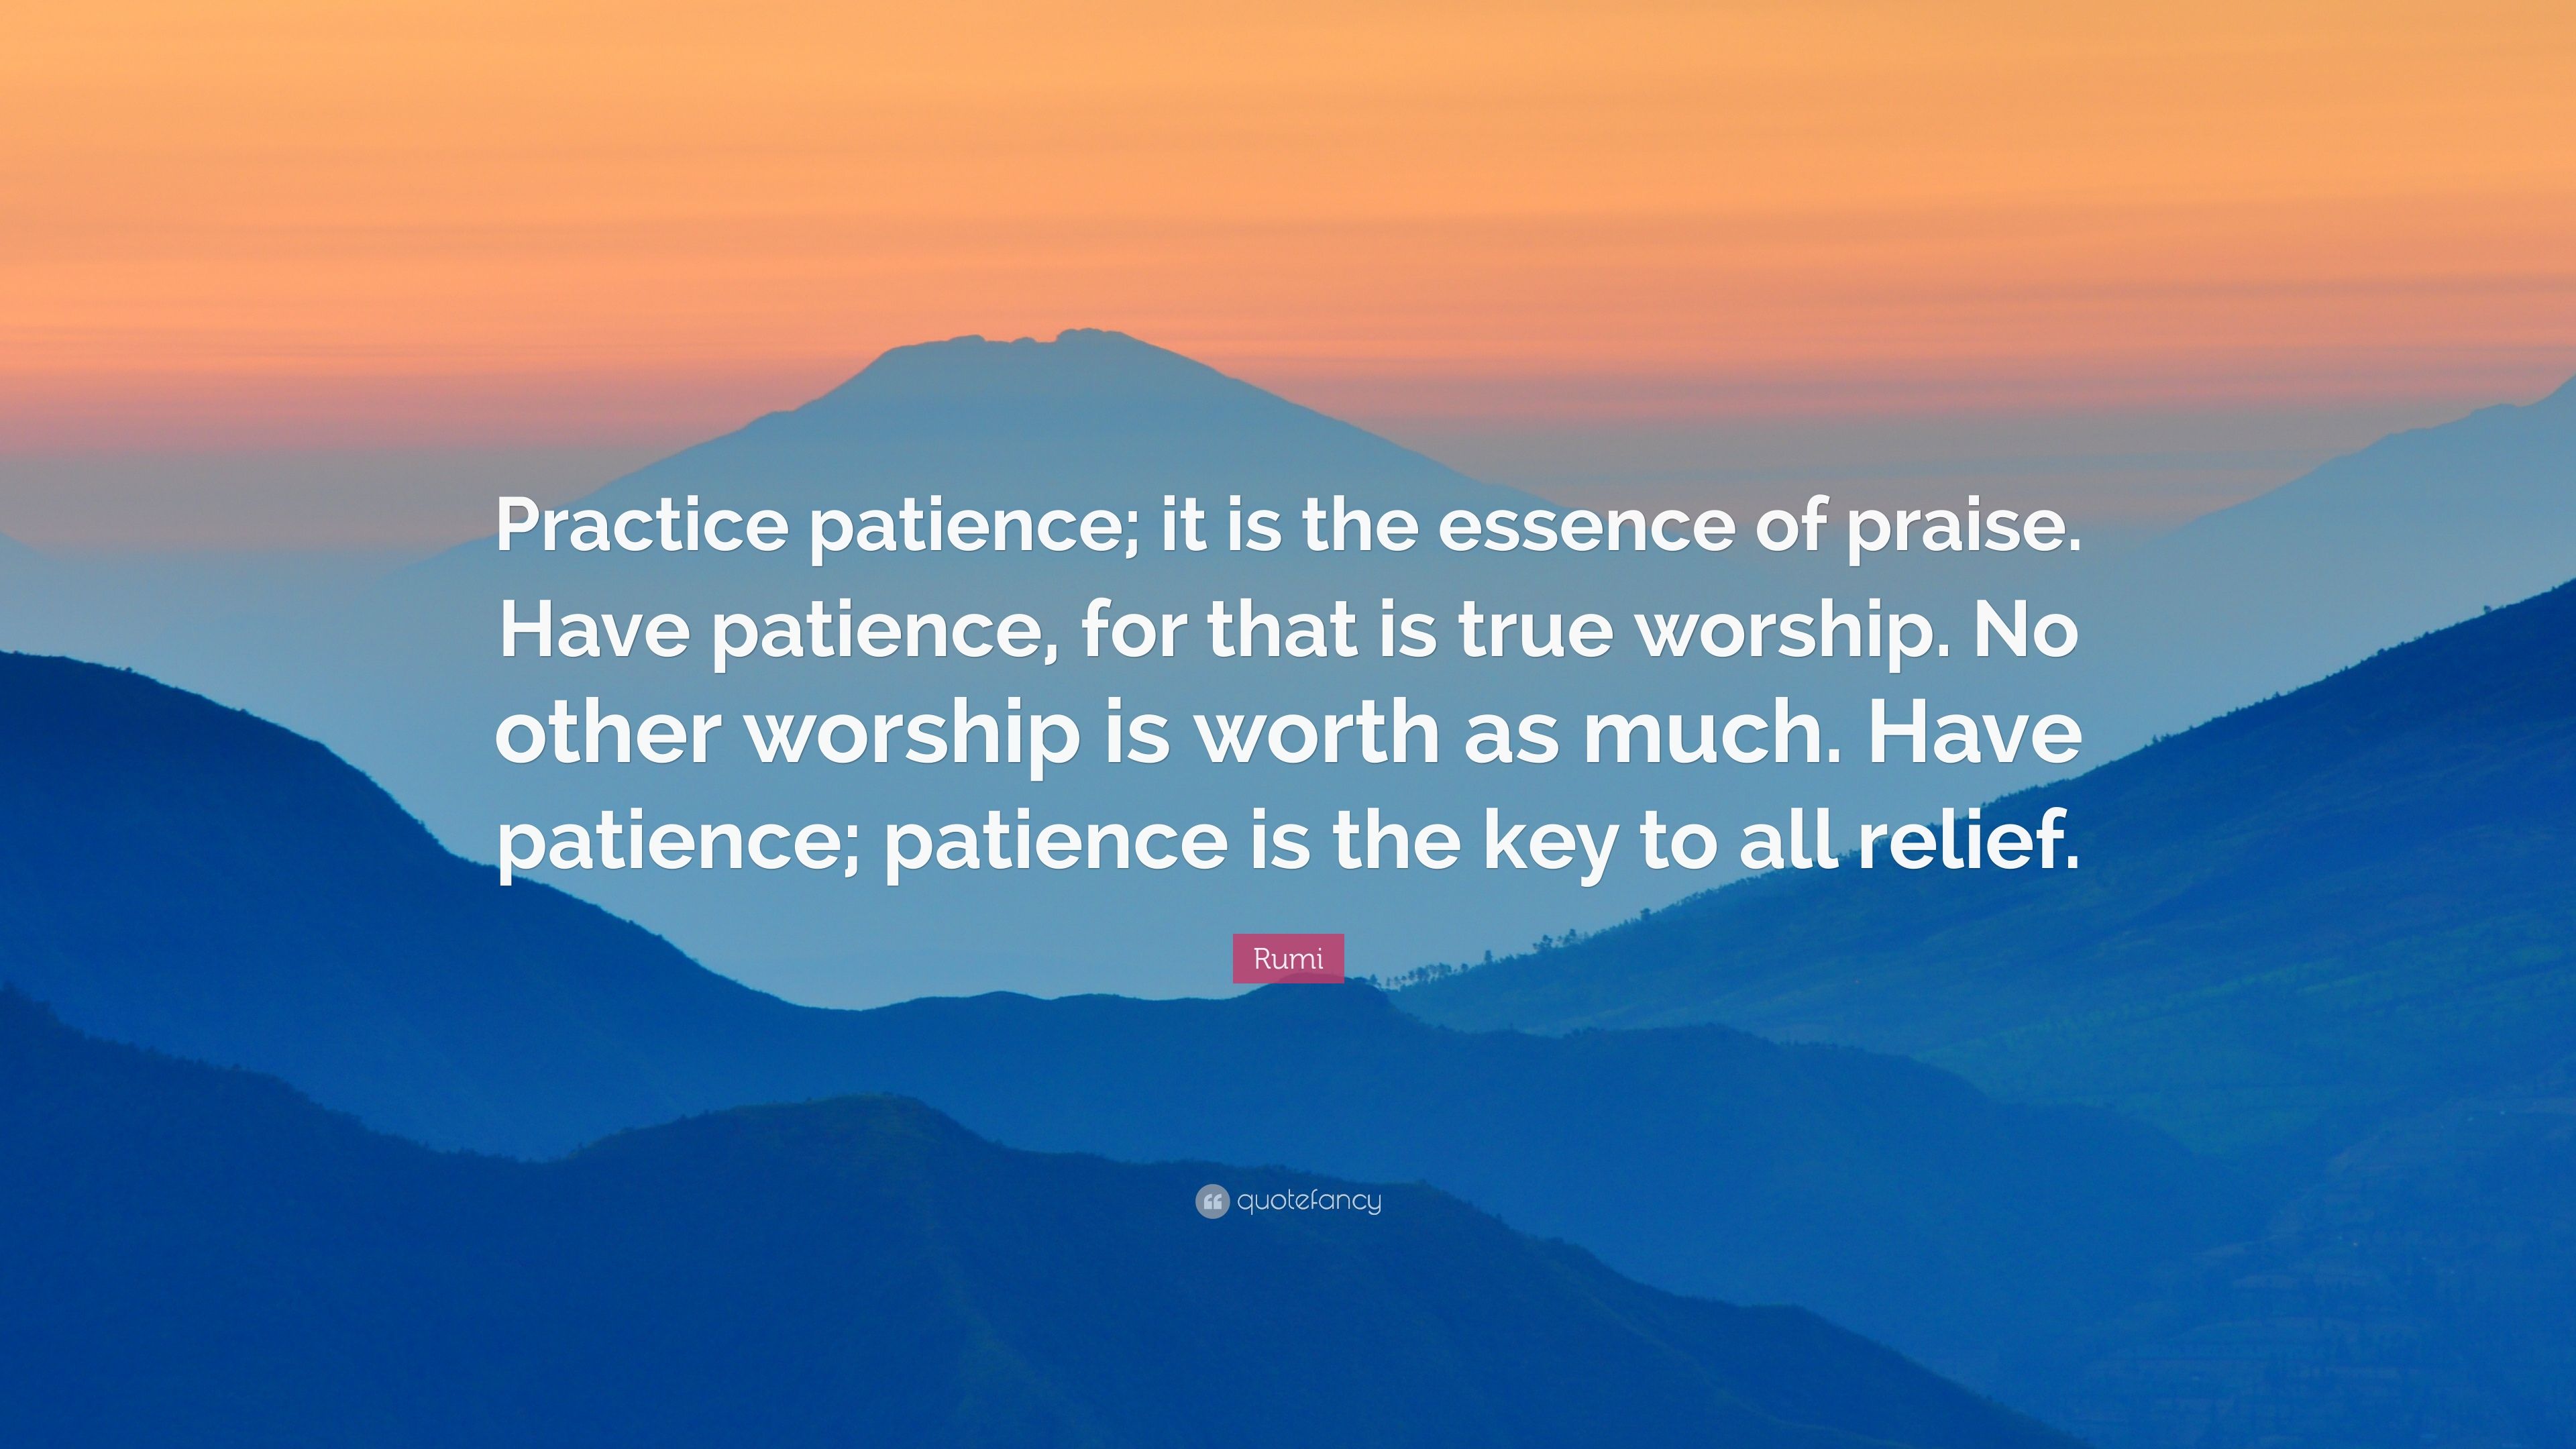 Rumi Quote Practice Patience It Is The Essence Of Praise Have